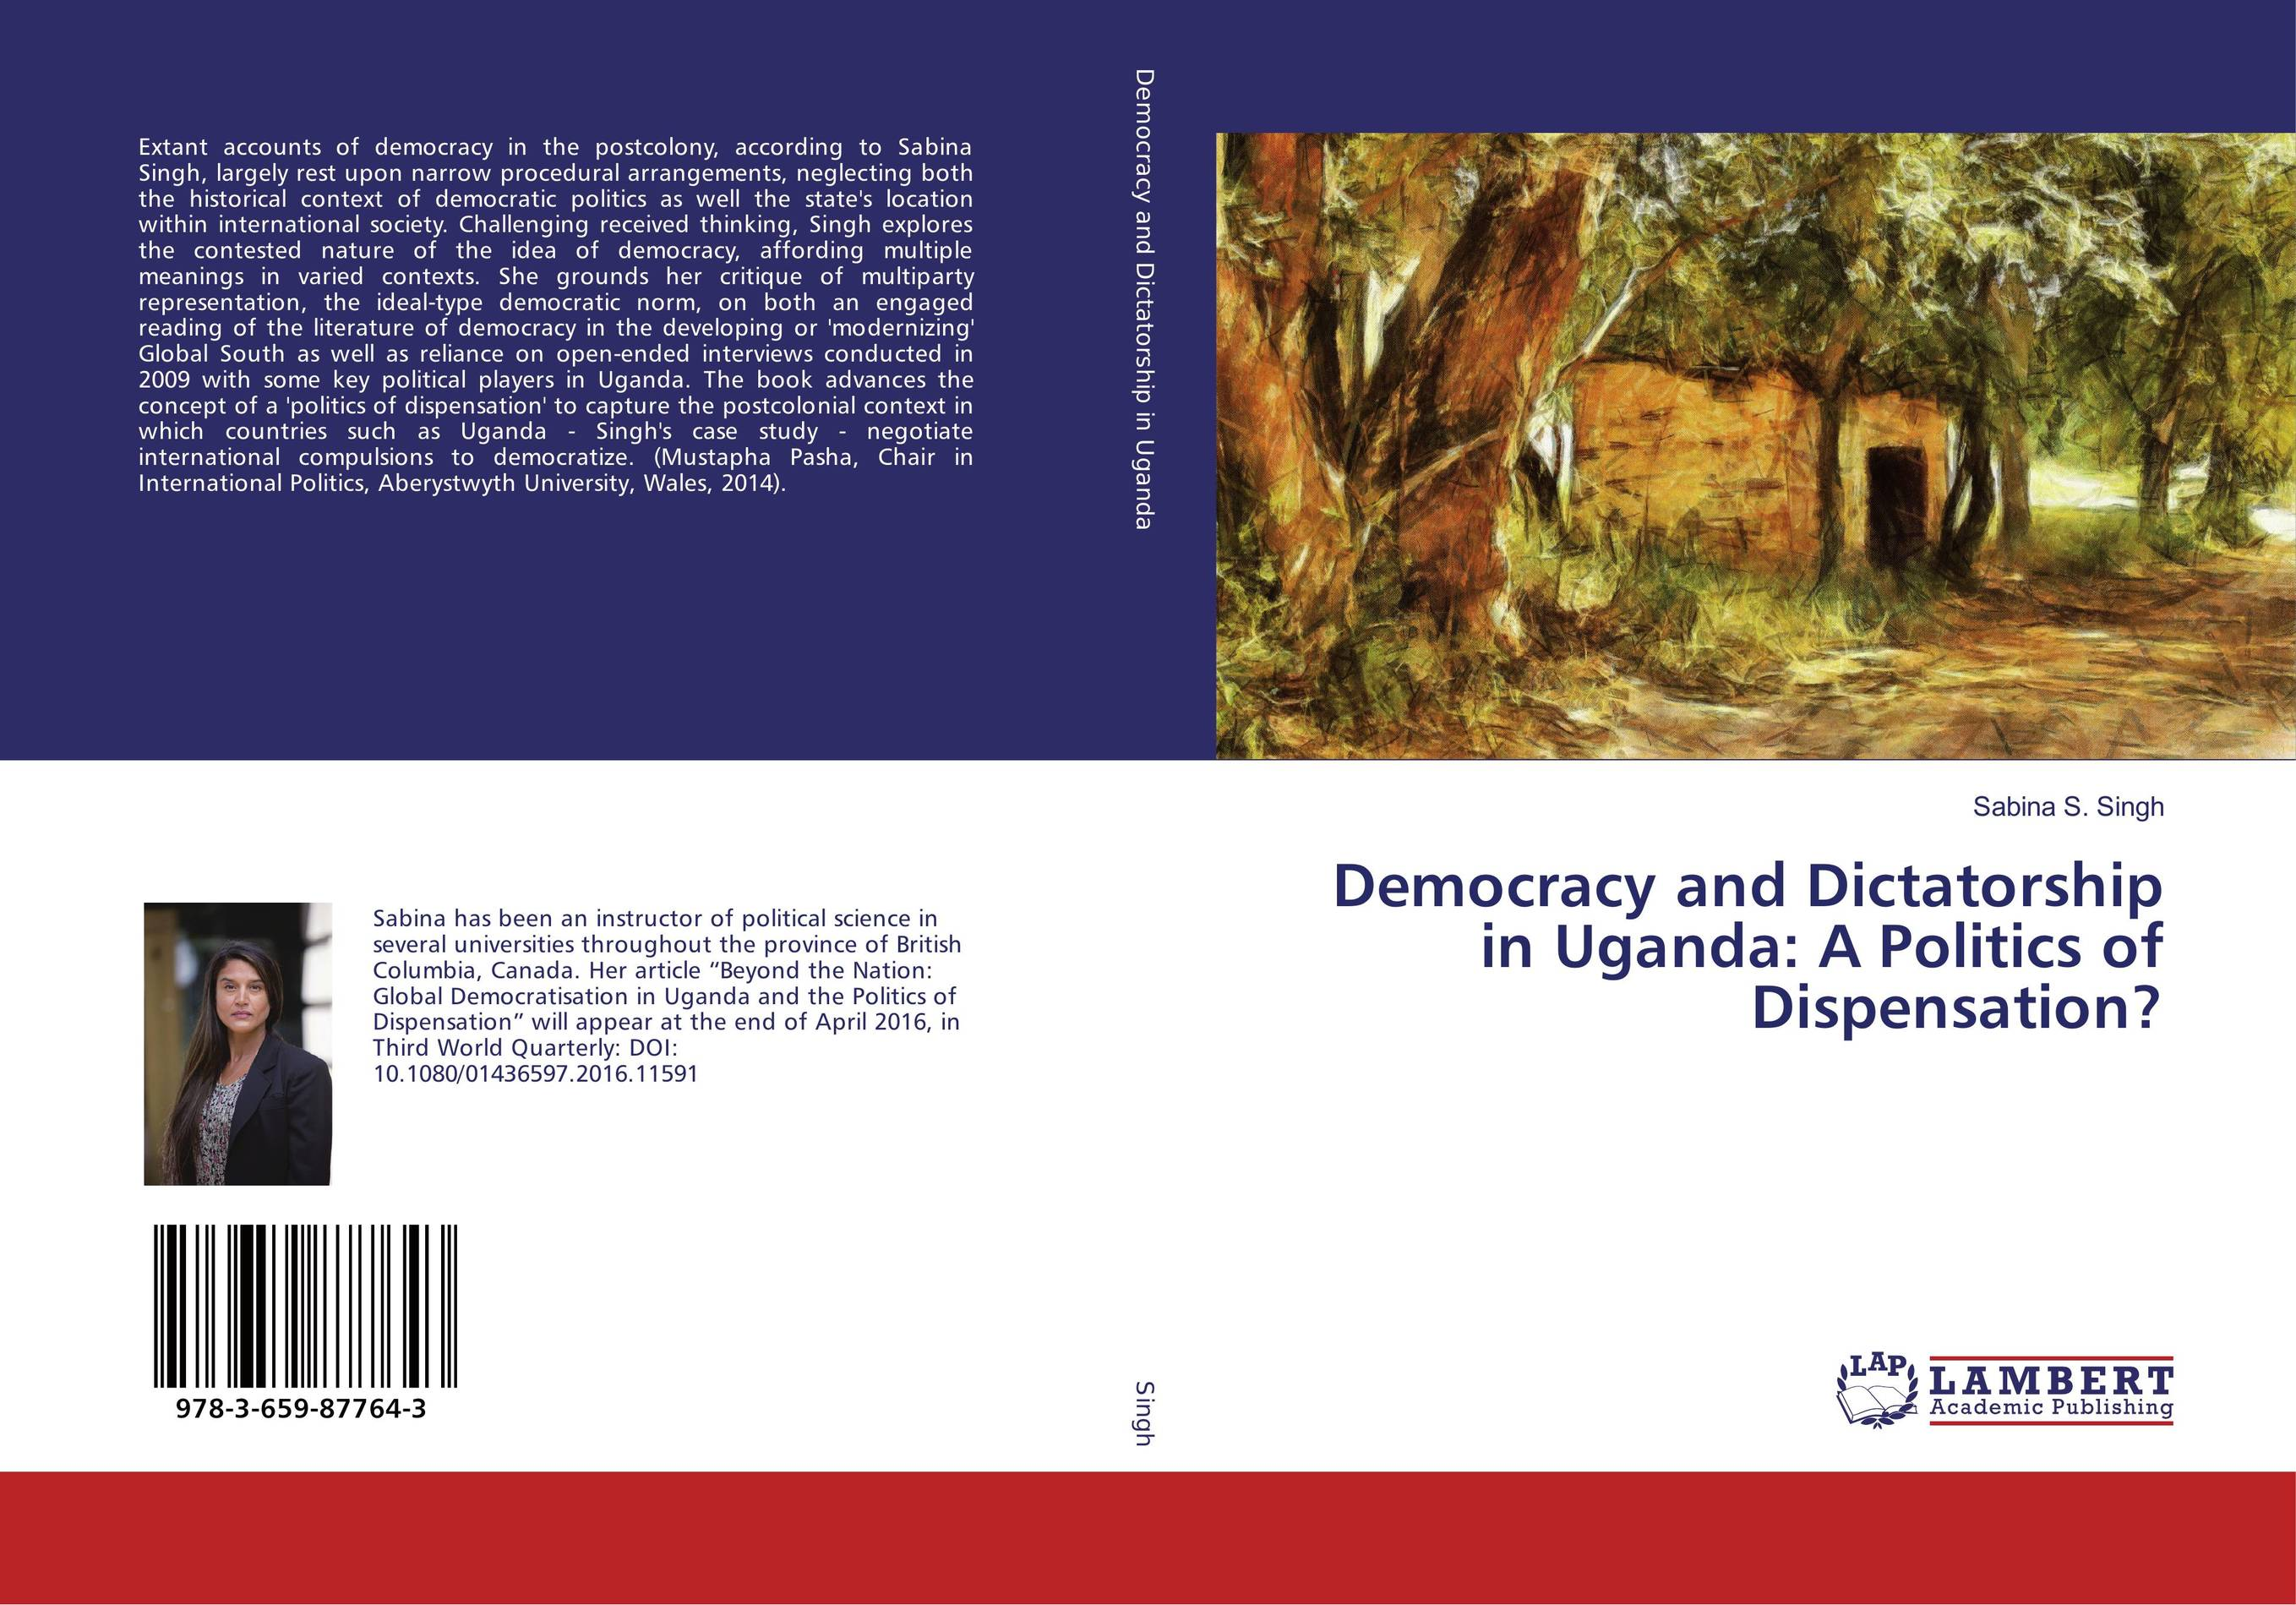 Democracy and Dictatorship in Uganda: A Politics of Dispensation? купить